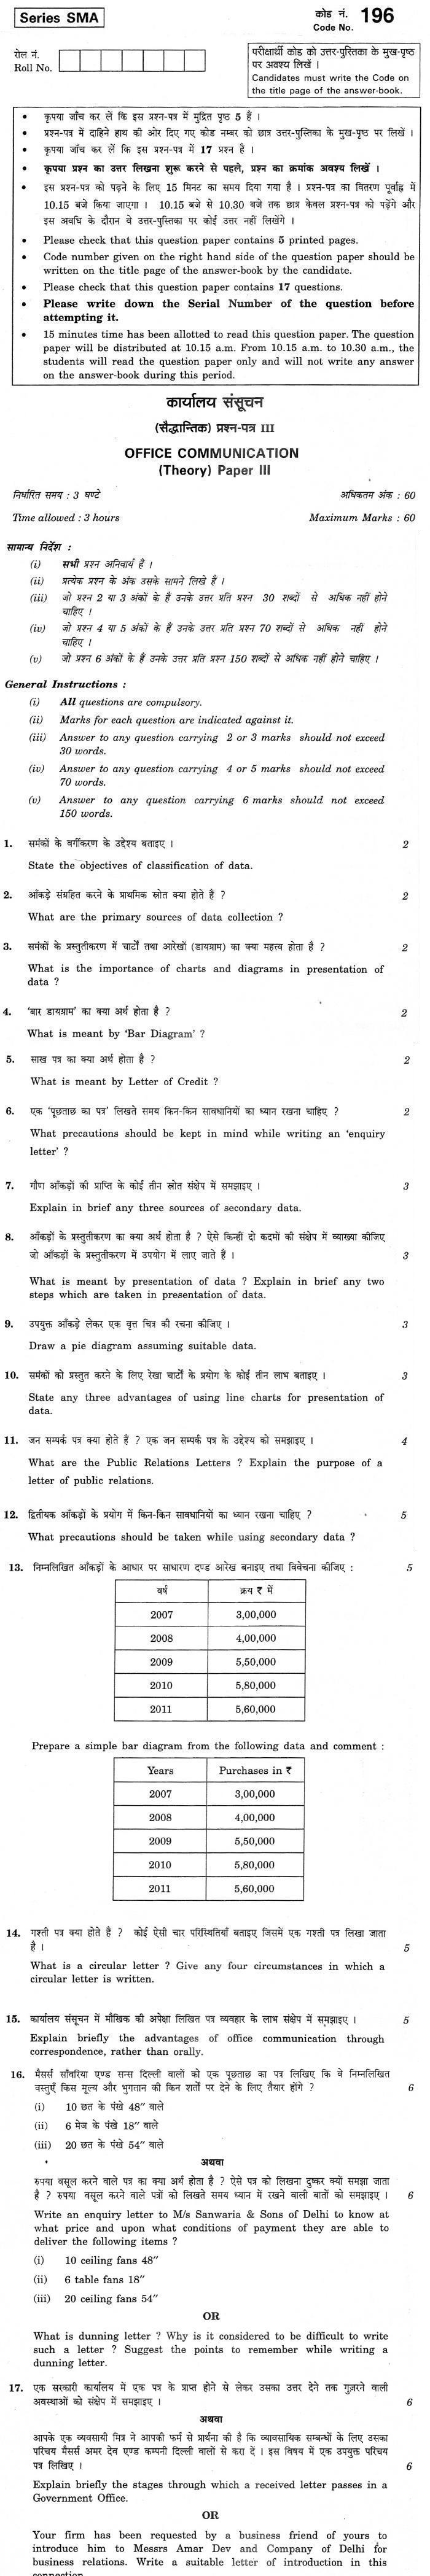 CBSE Class XII Previous Year Question Paper 2012 Office Communication Paper III